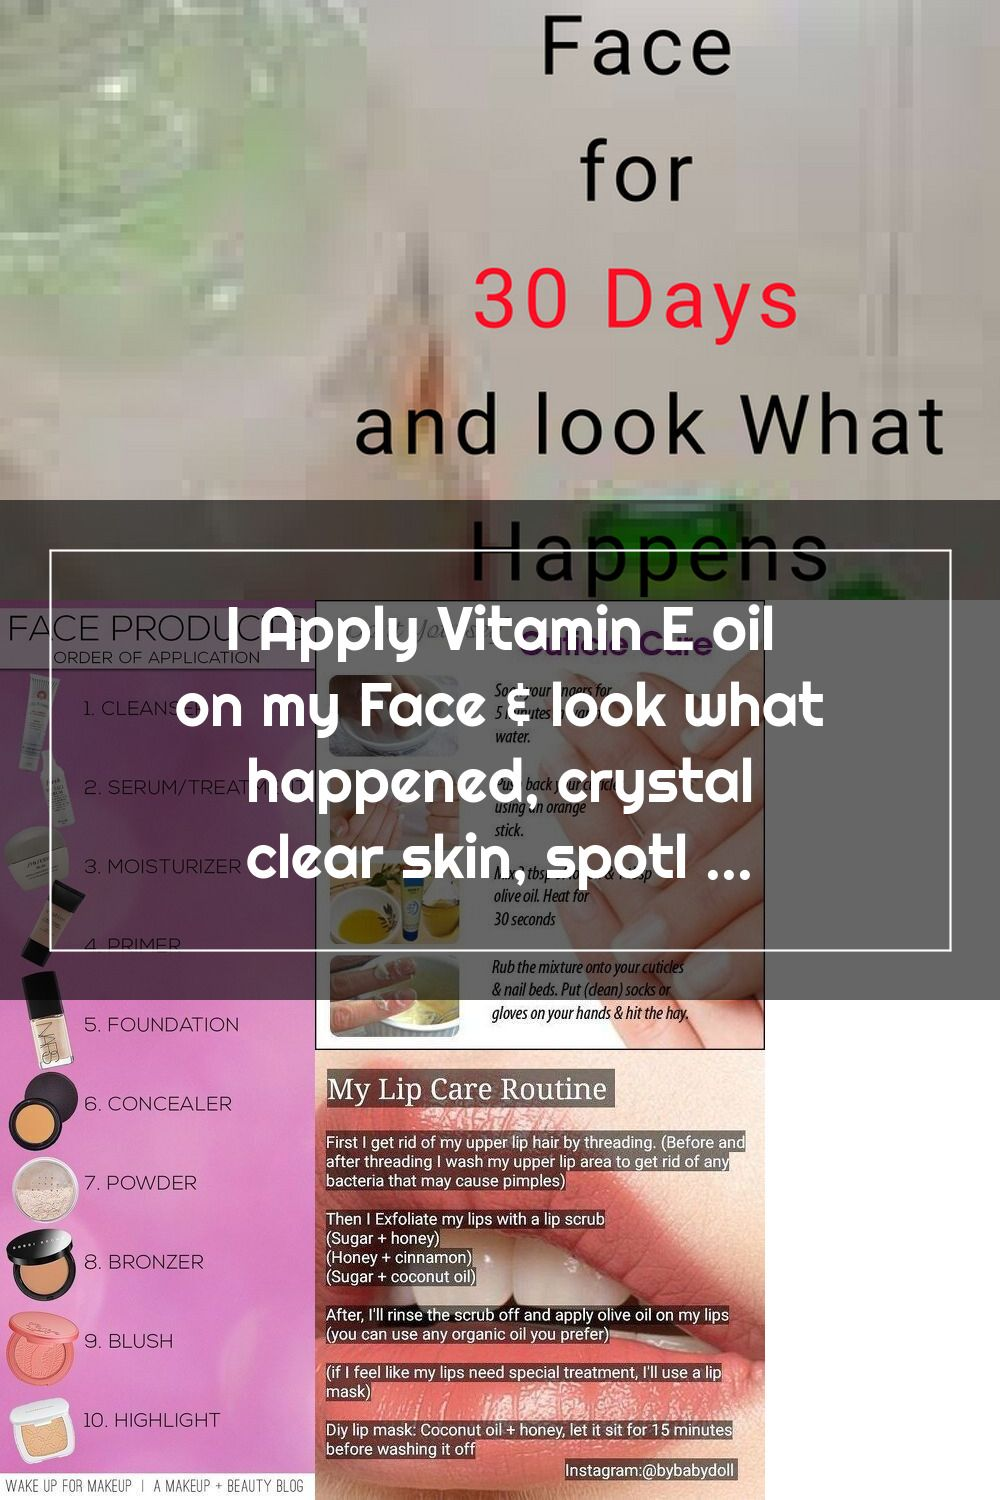 How to use vitamin E oil to make your skin crystal clear